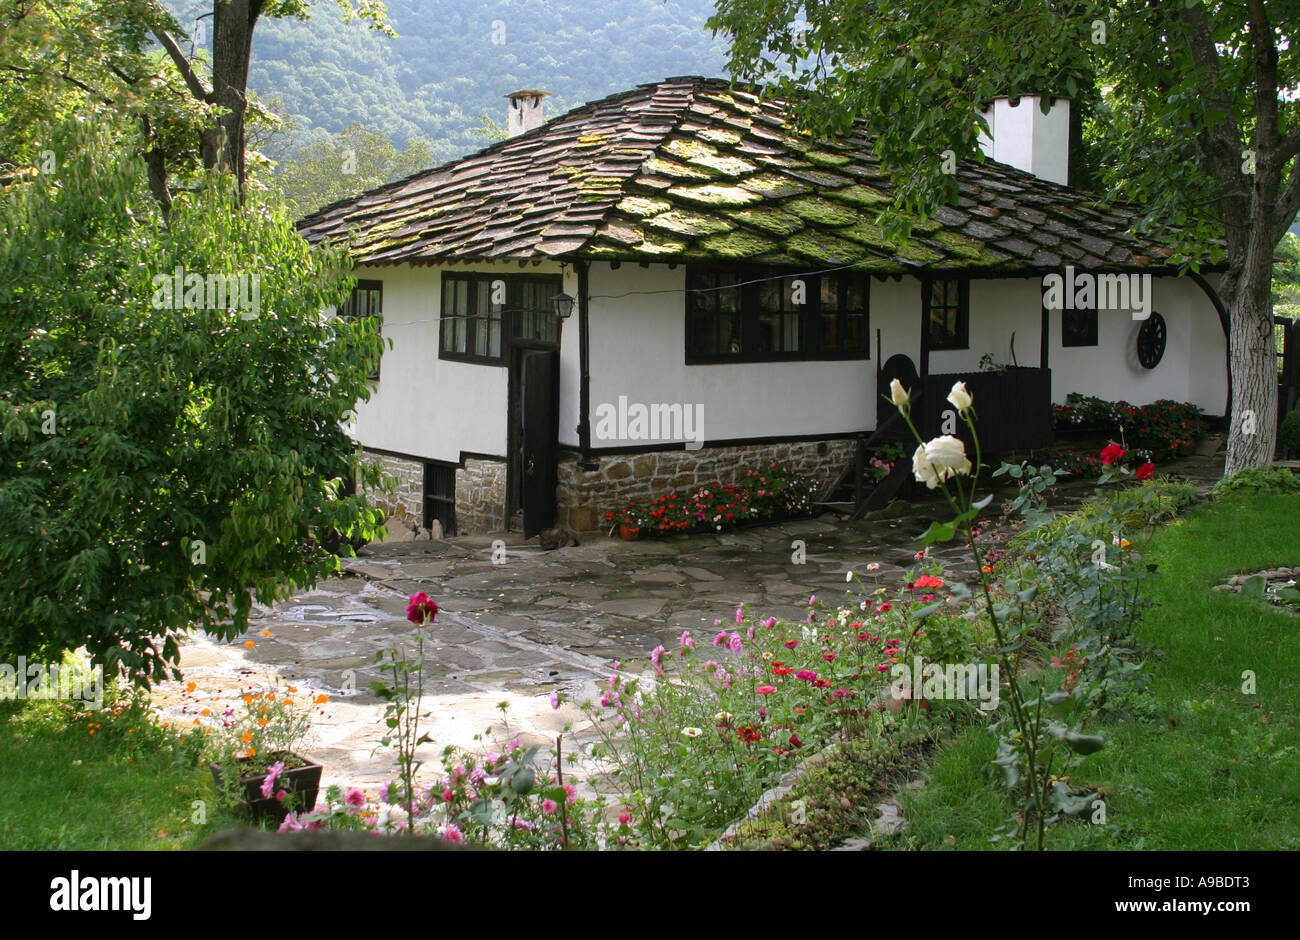 Old Traditional Hous In Village Bojenci, Bulgaria